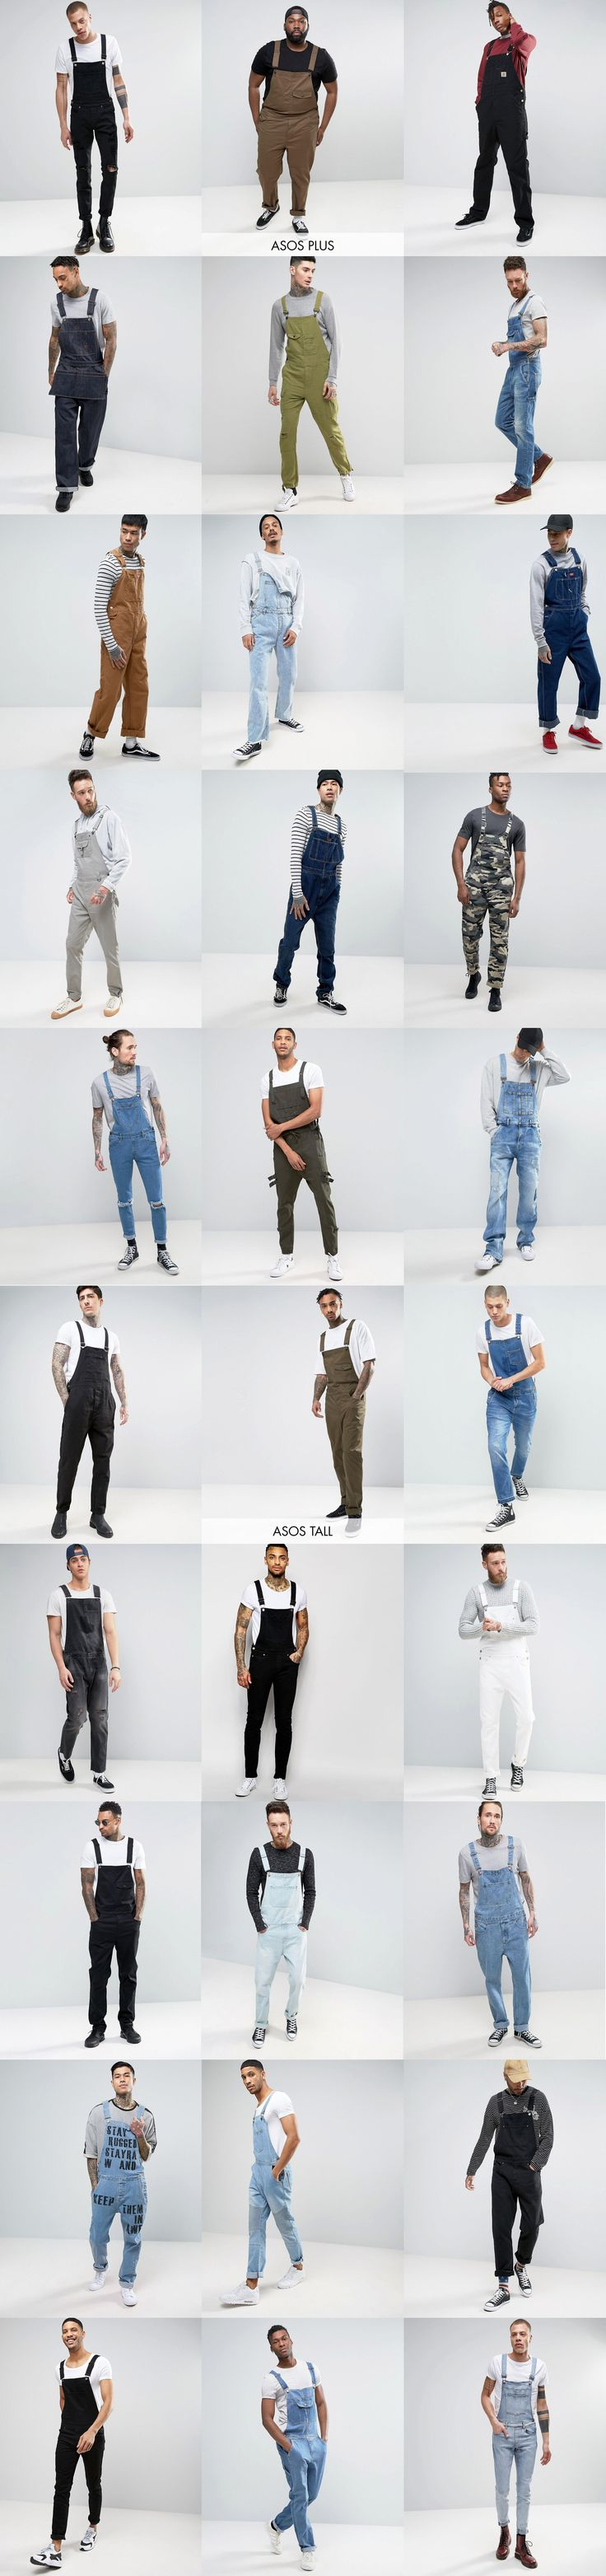 ASOS menswear shuts down the new season with the latest trends and the coolest products, designed in London and sold across the world.